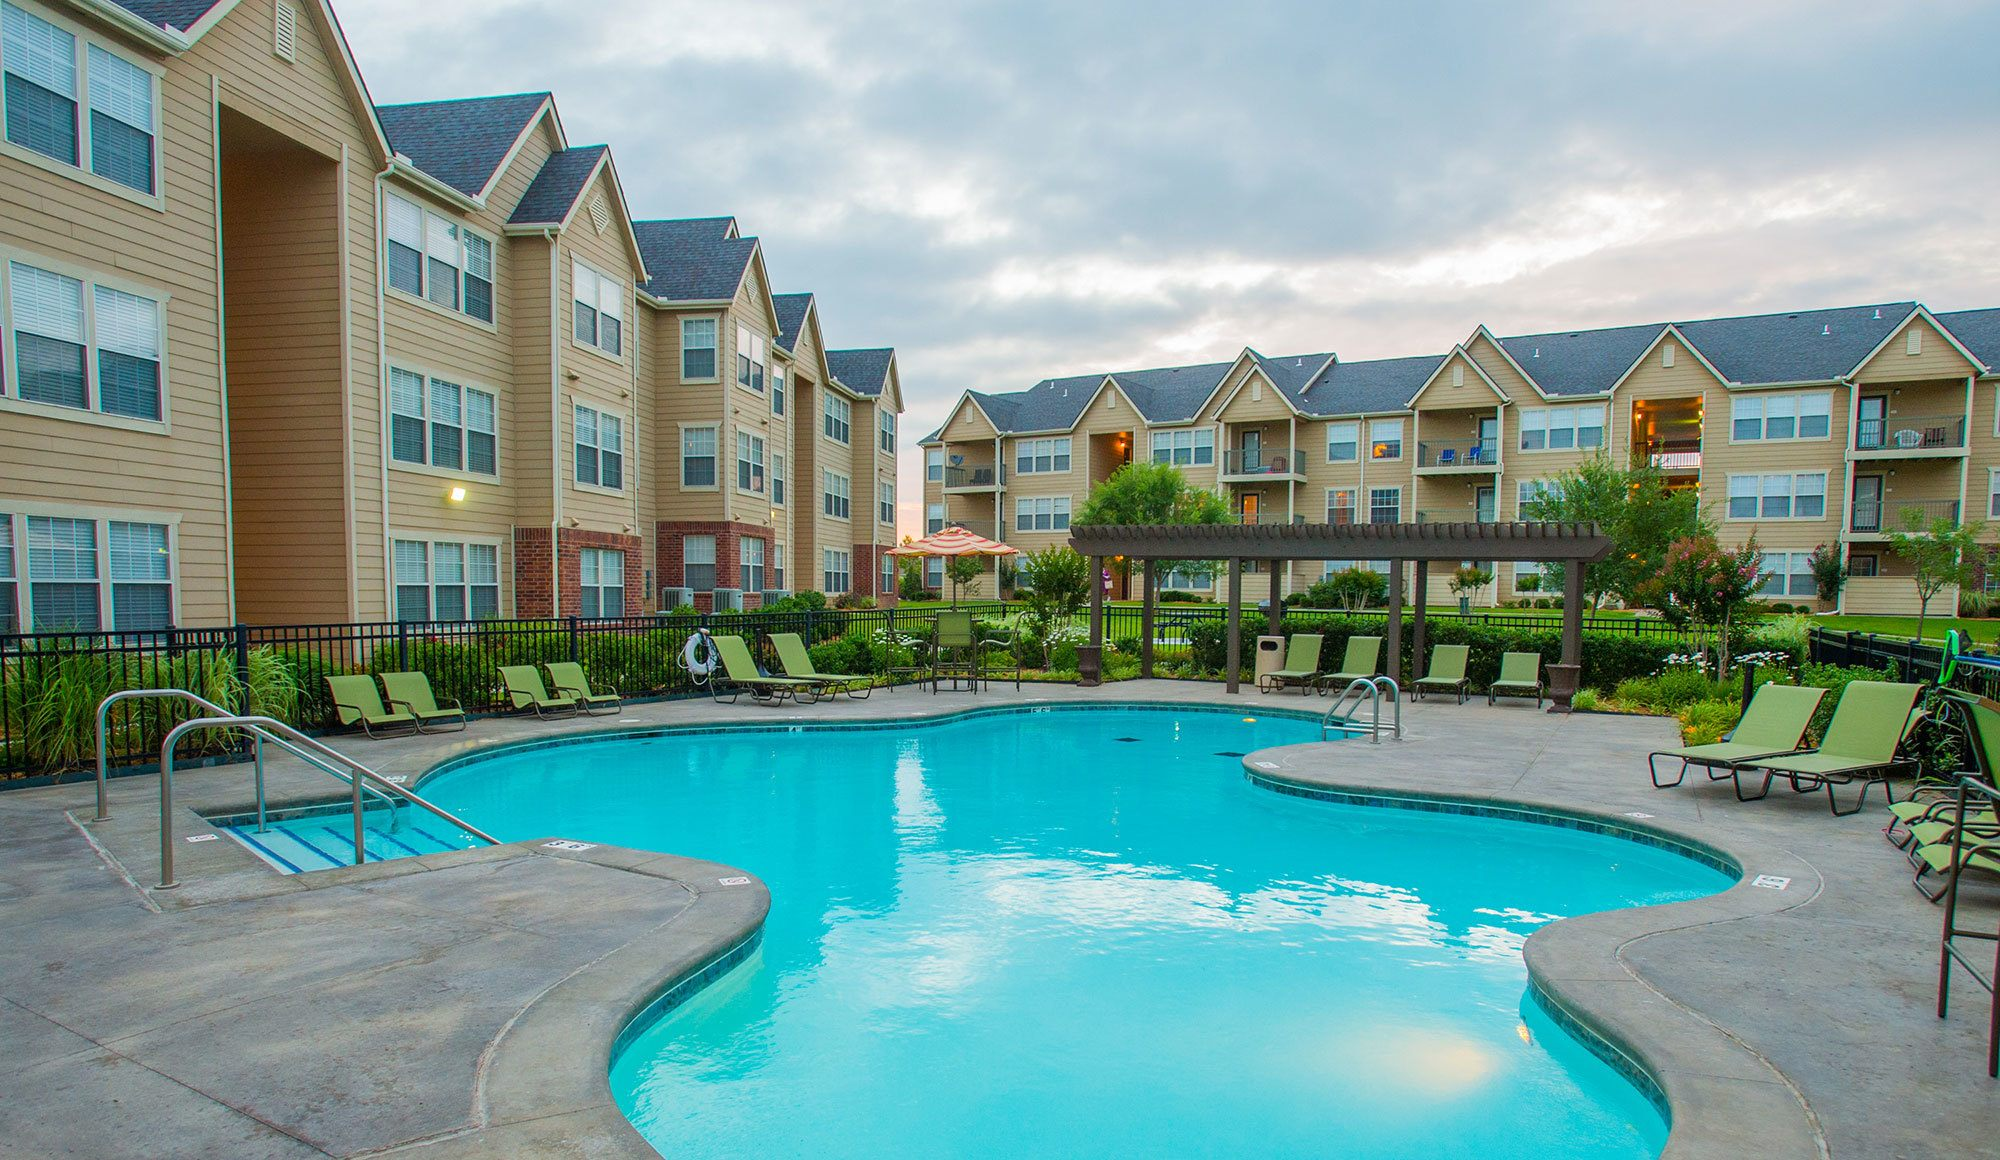 Owasso, OK apartments with a magnificent swimming pool